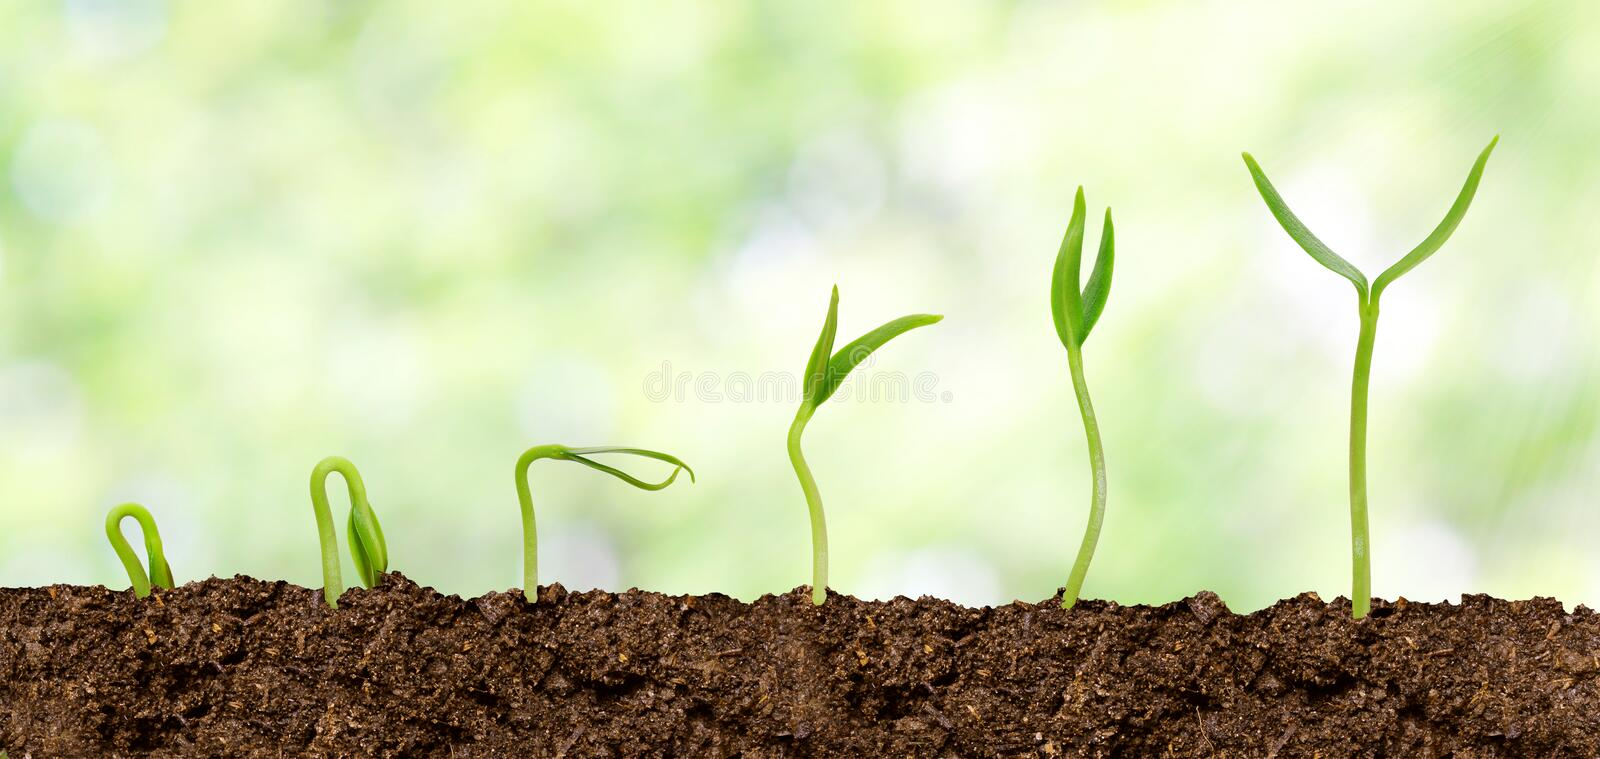 Download Plants Growing From Soil - Plant Progress Stock Image - Image of growth, flora: 40813577